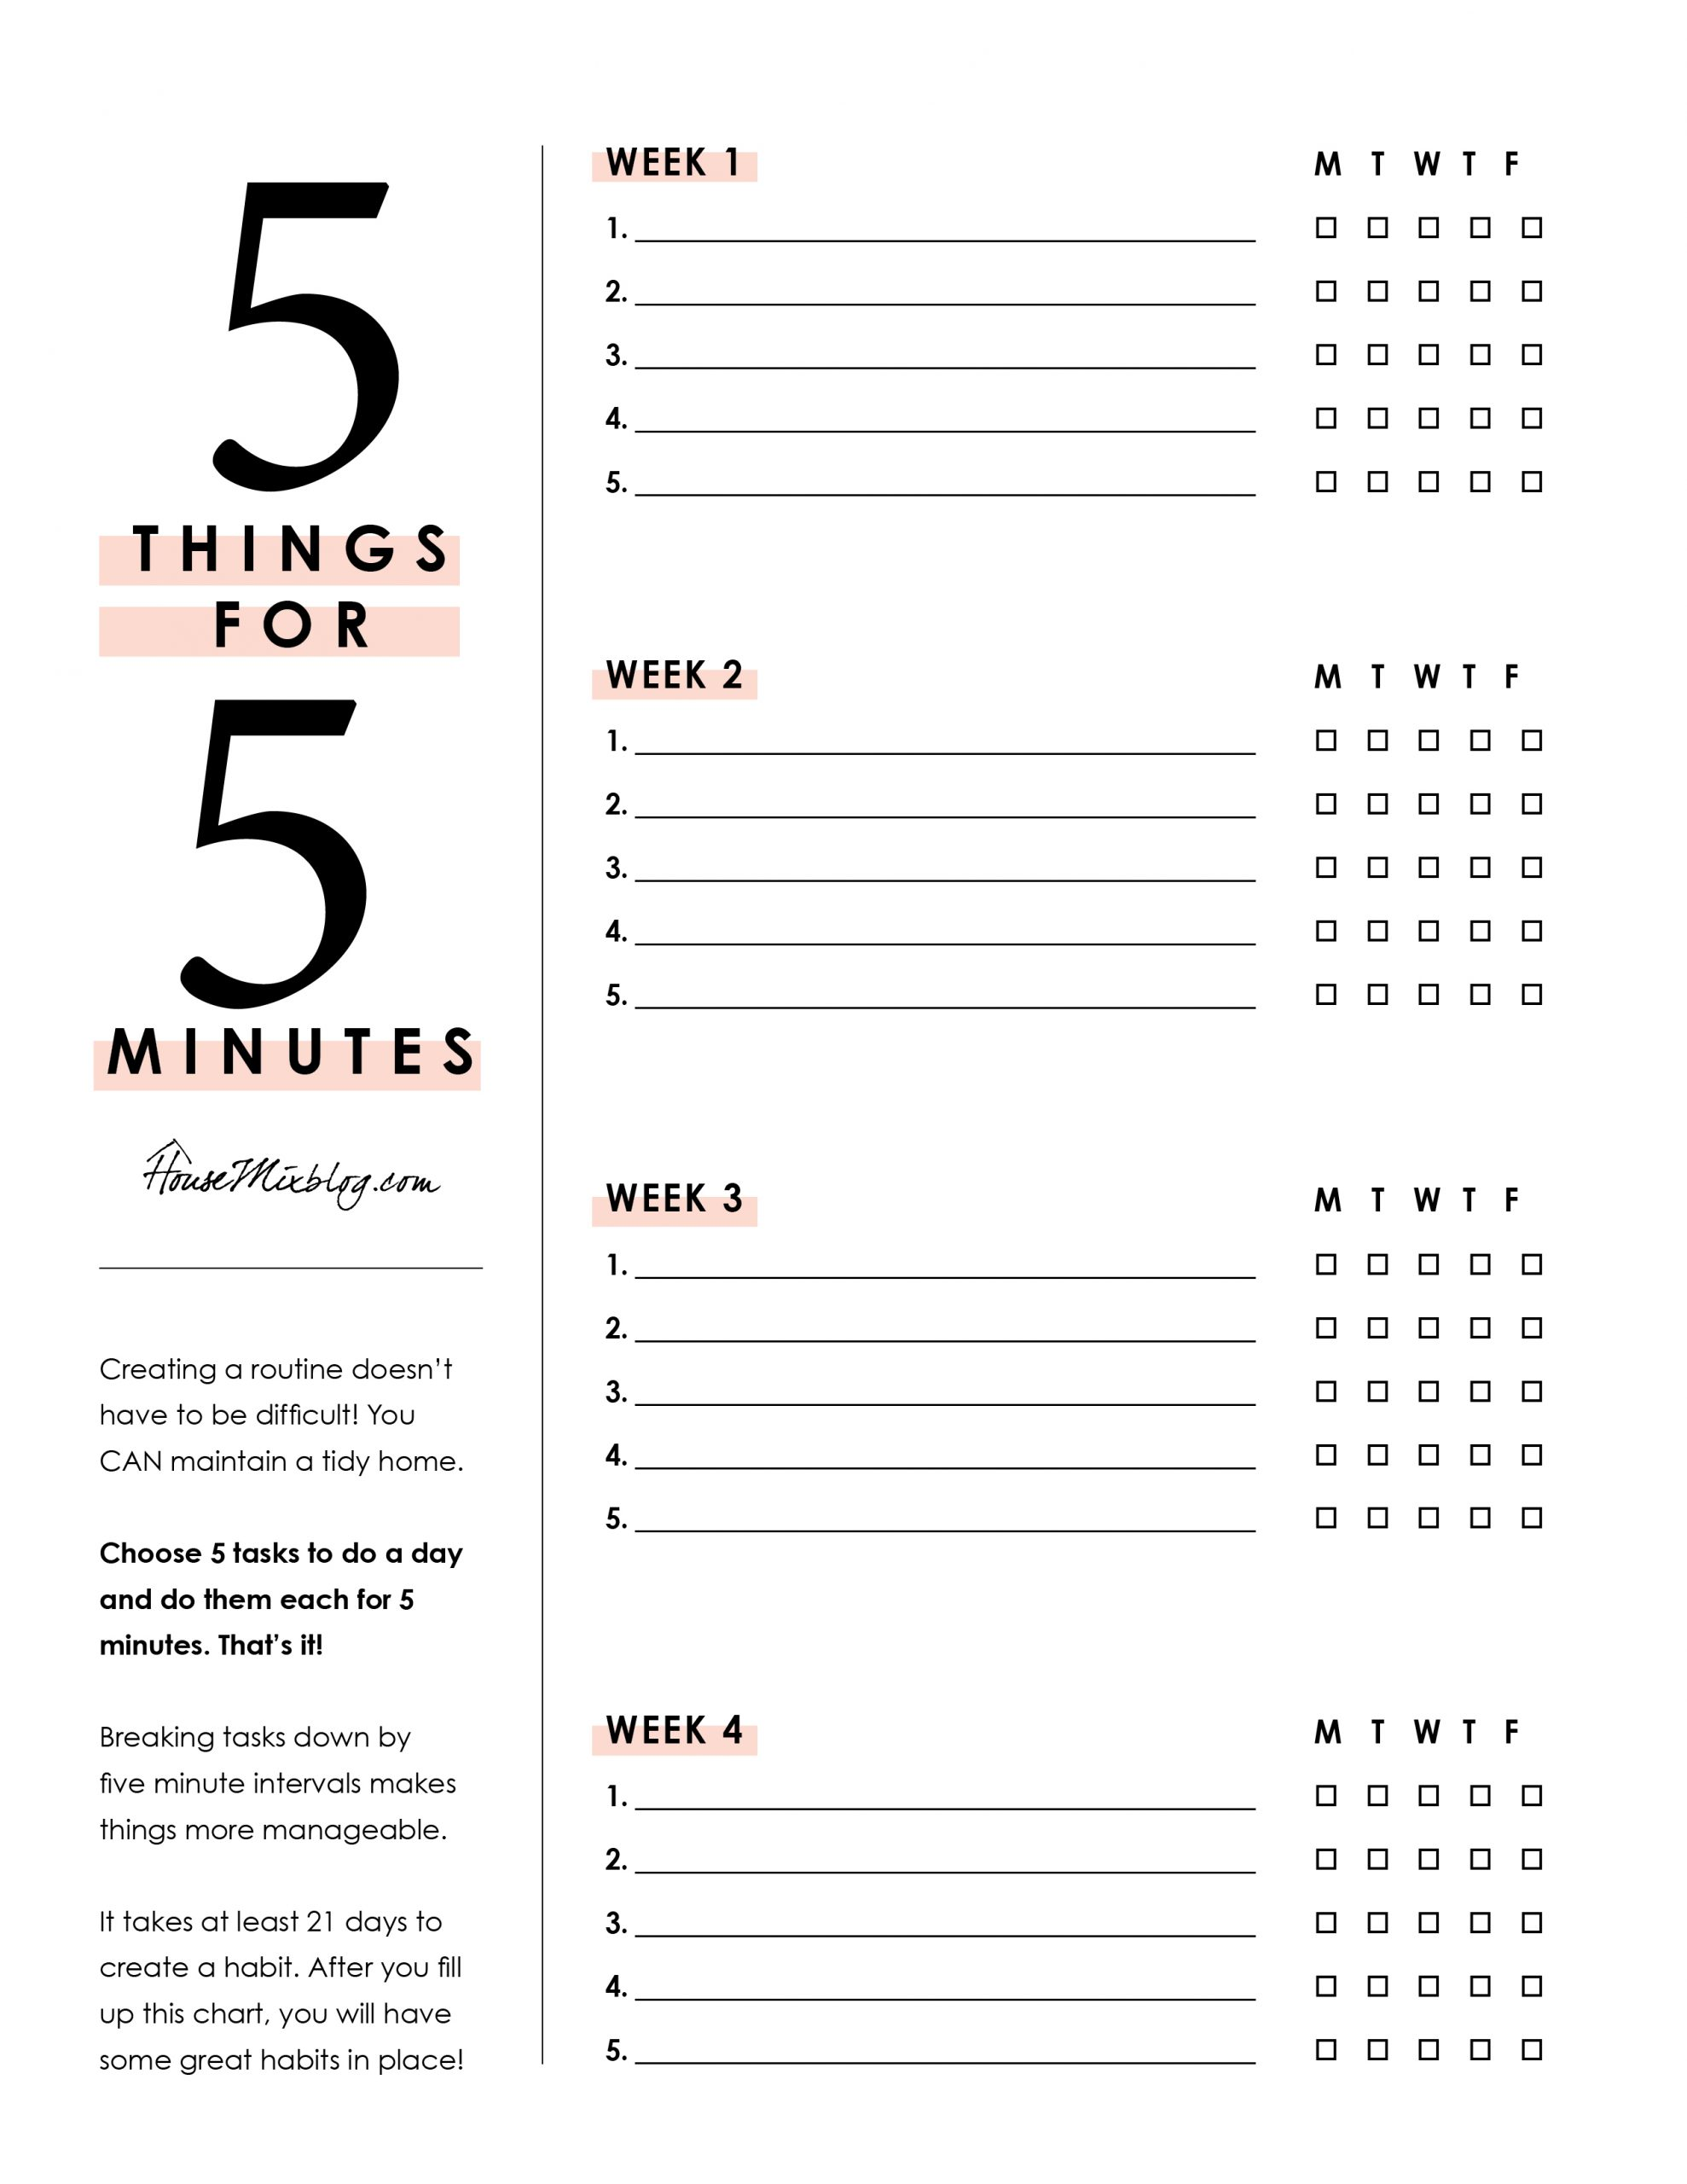 5 things for 5 minutes weekly printable - chores, checklist, routine, cleaning, organizing